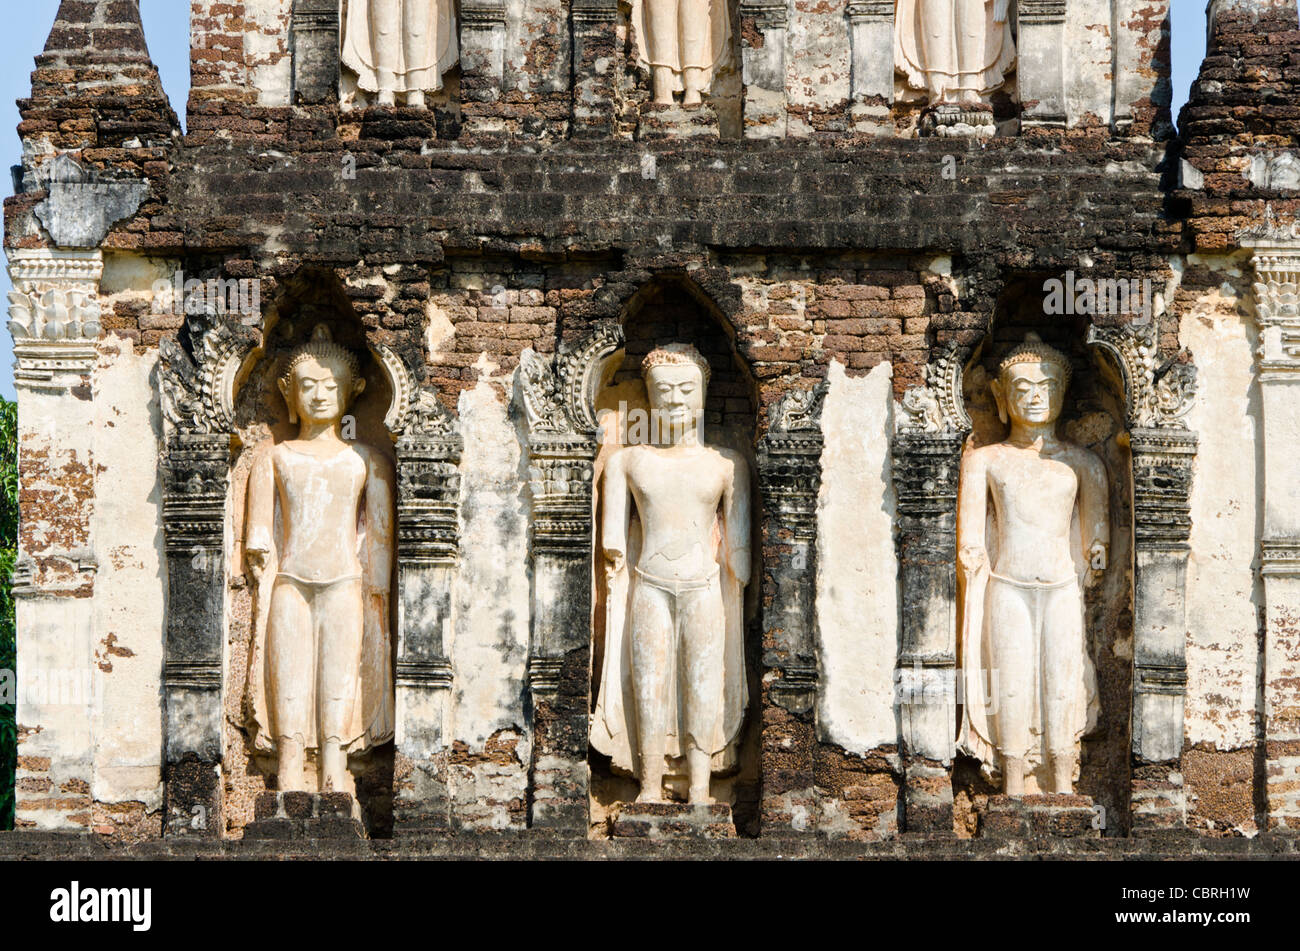 Midsection of 900 year old chedi (stupa) with standing Buddhas at Wat Chama Thewi in Lamphun in northern Thailand - Stock Image